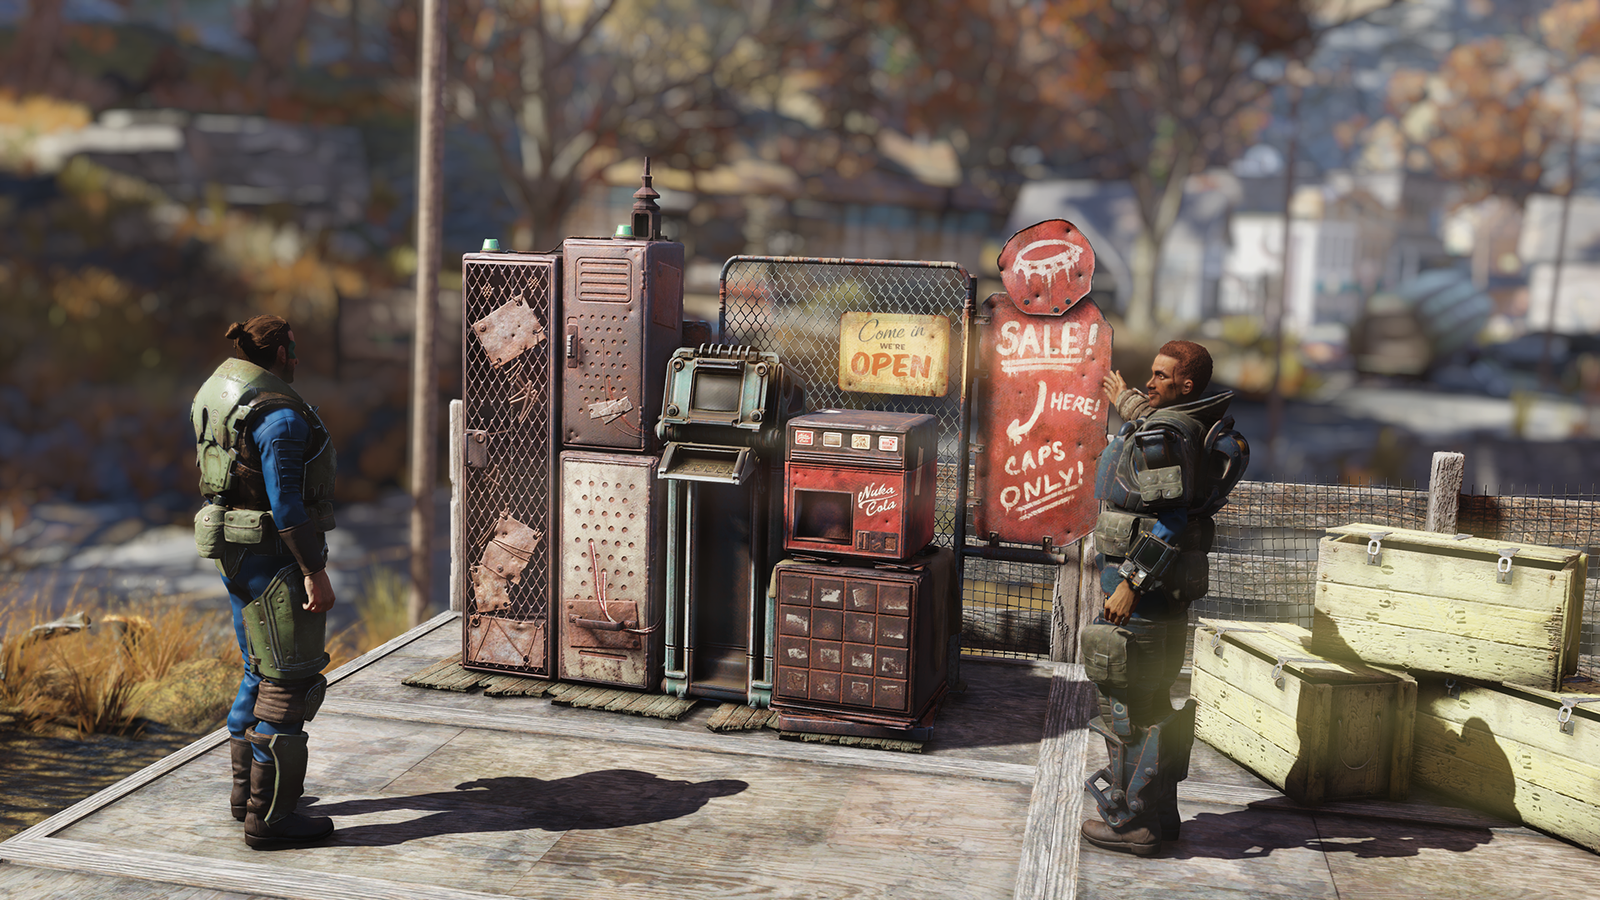 Latest Tech News: Fallout 76 Players Can Now Set Up Their Own Stores, But Bethesda Taxes Their Goods - Kotaku thumbnail